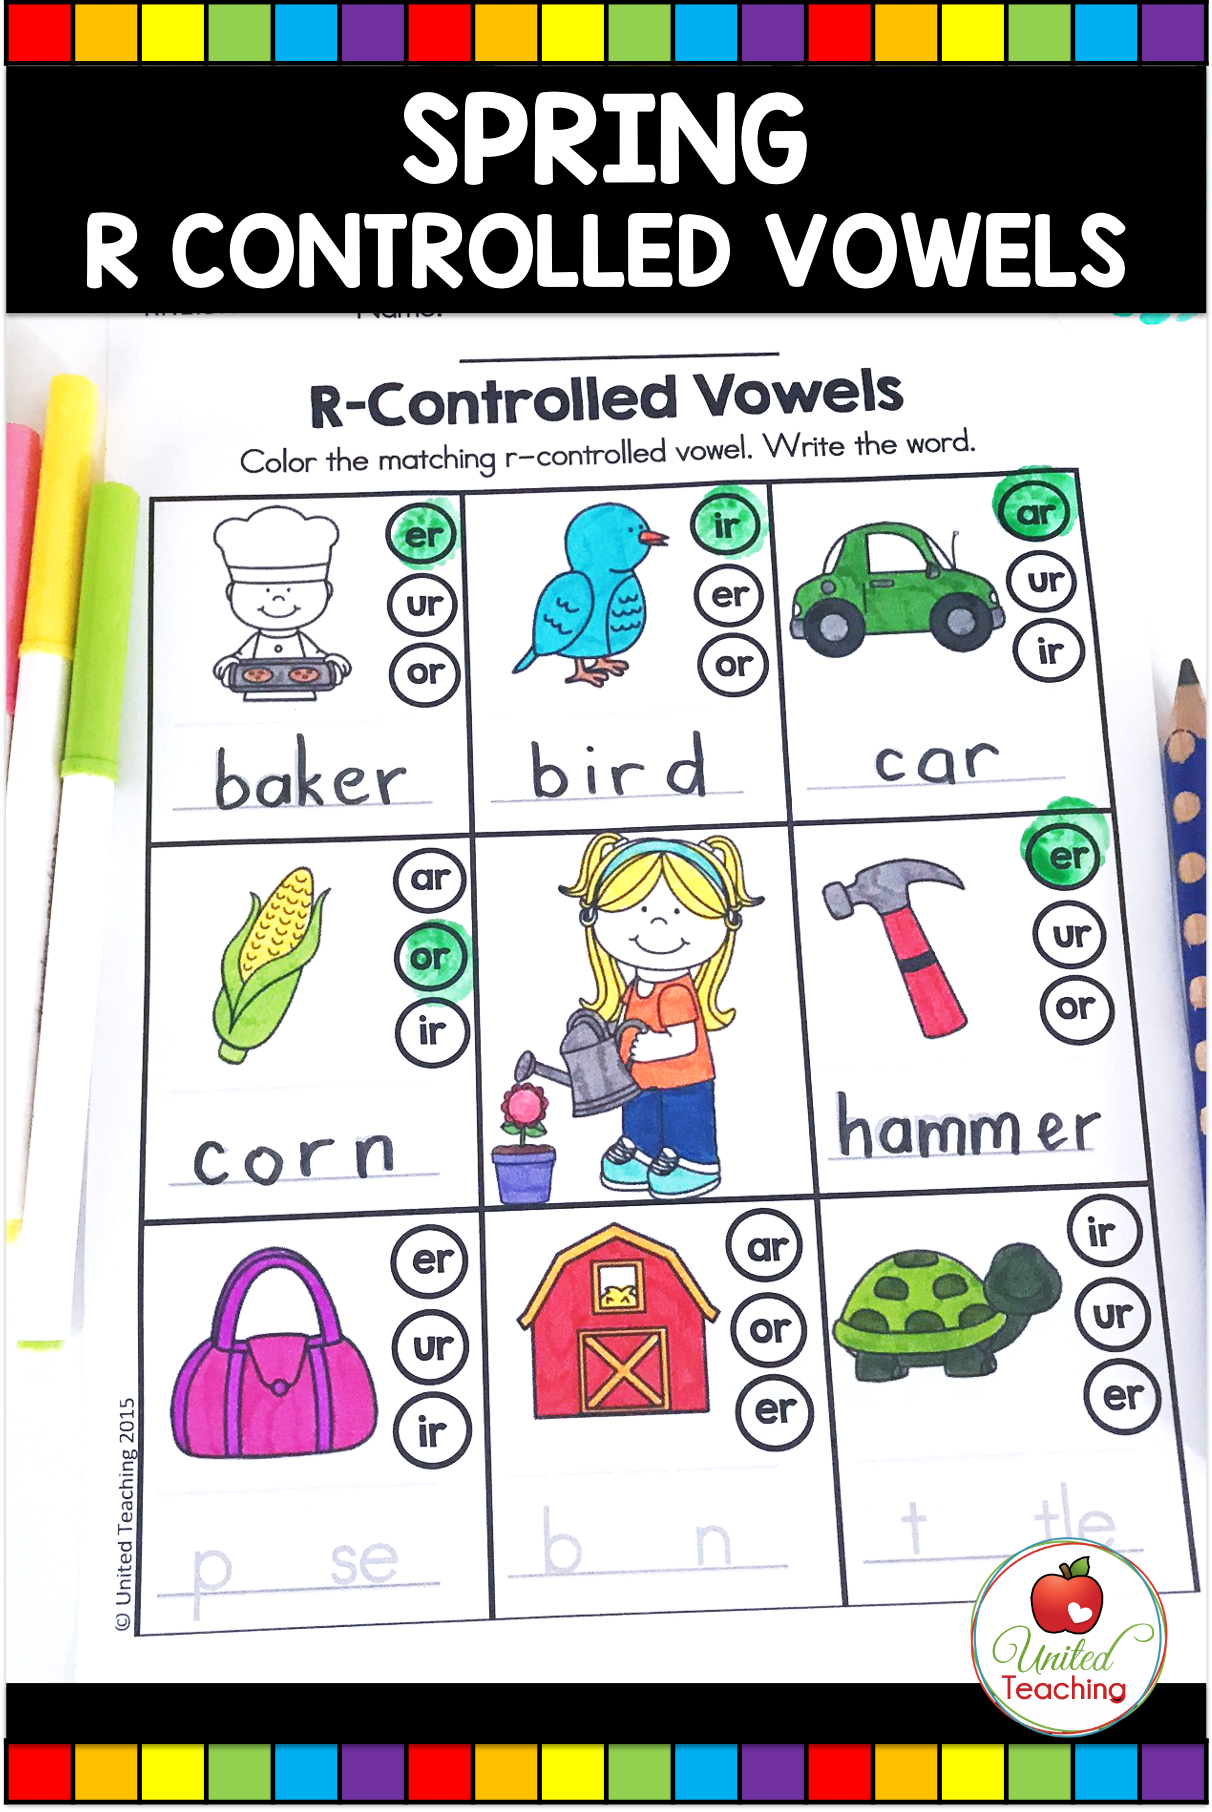 medium resolution of Spring Math and Literacy Activities (1st Grade) - United Teaching   R  controlled vowels activities